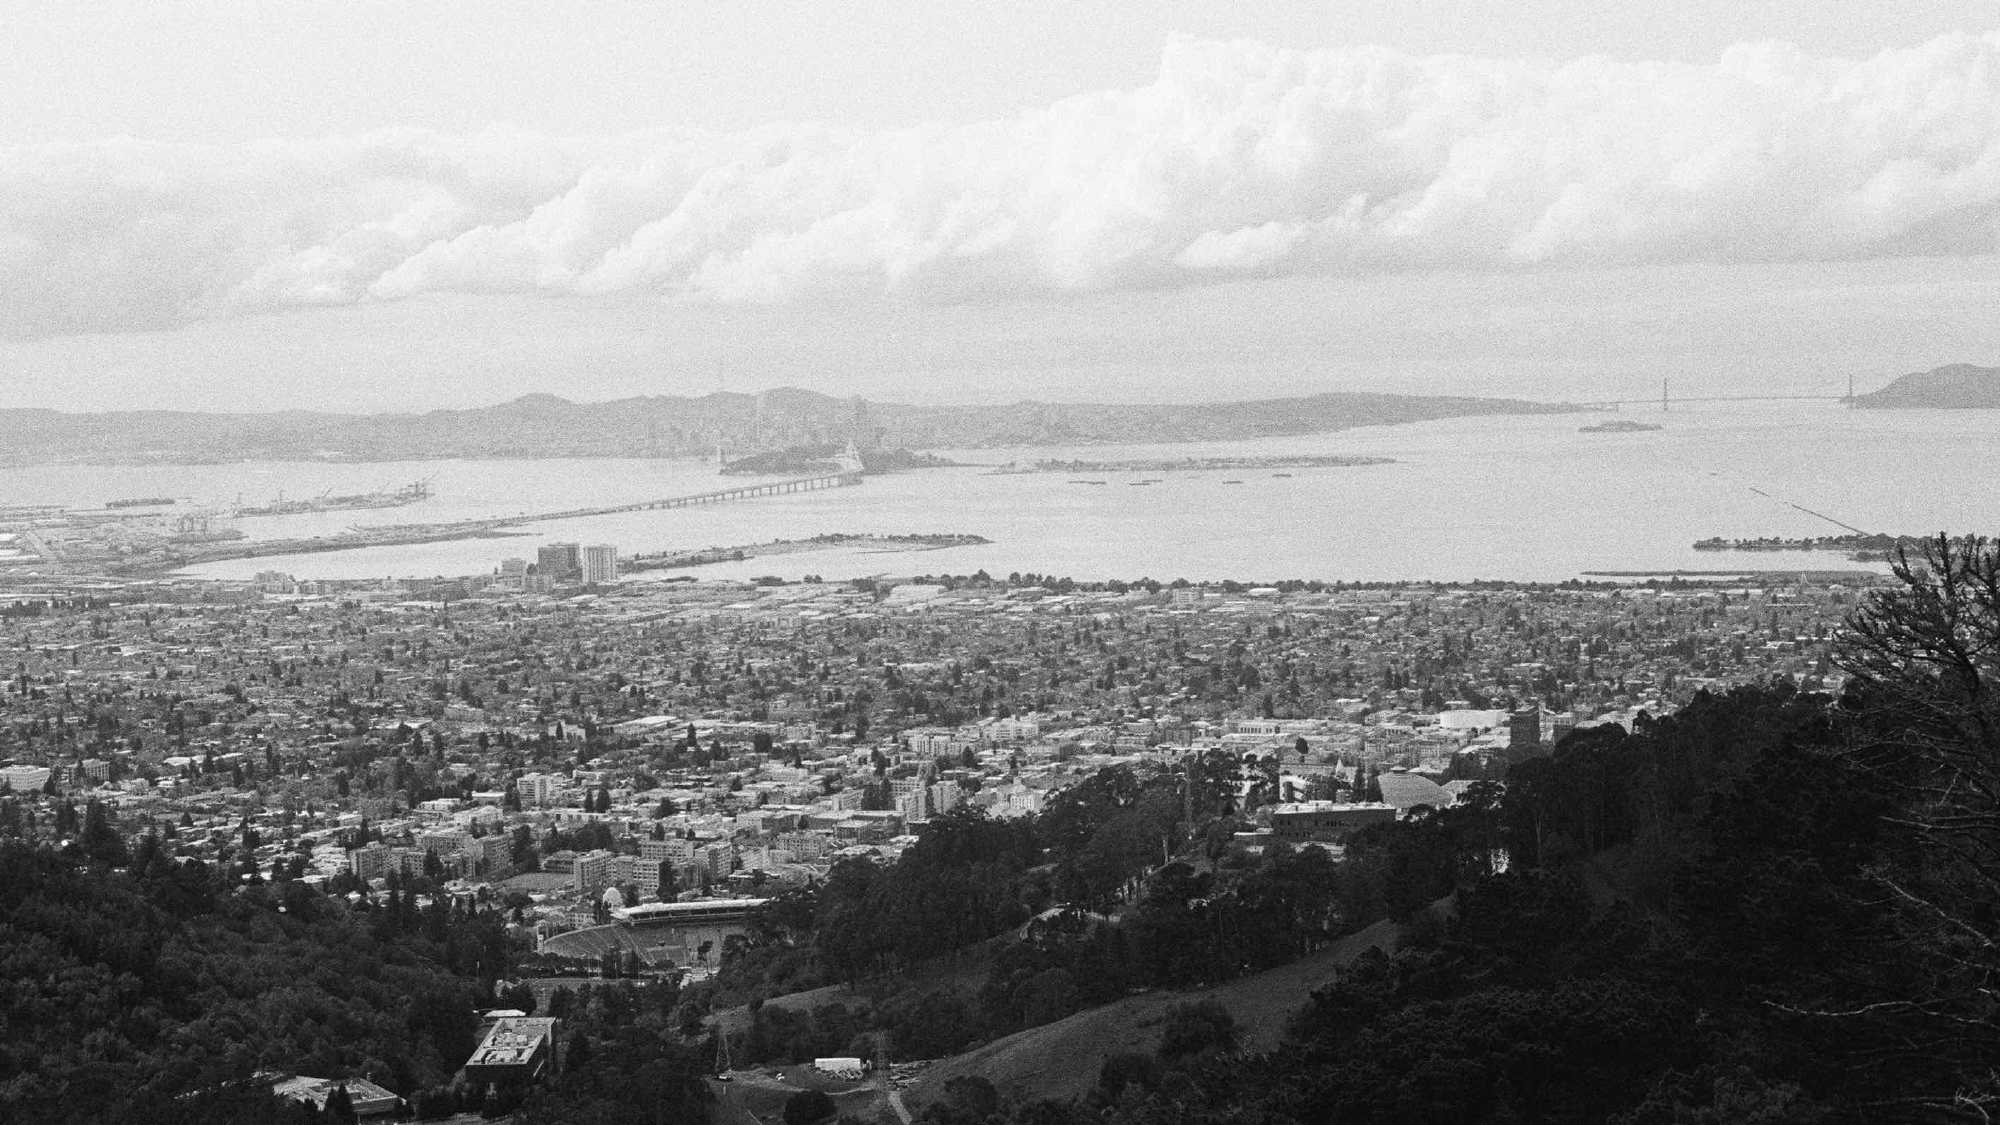 San Francisco Bay from the UC Berkeley Botanical Garden, March 2020